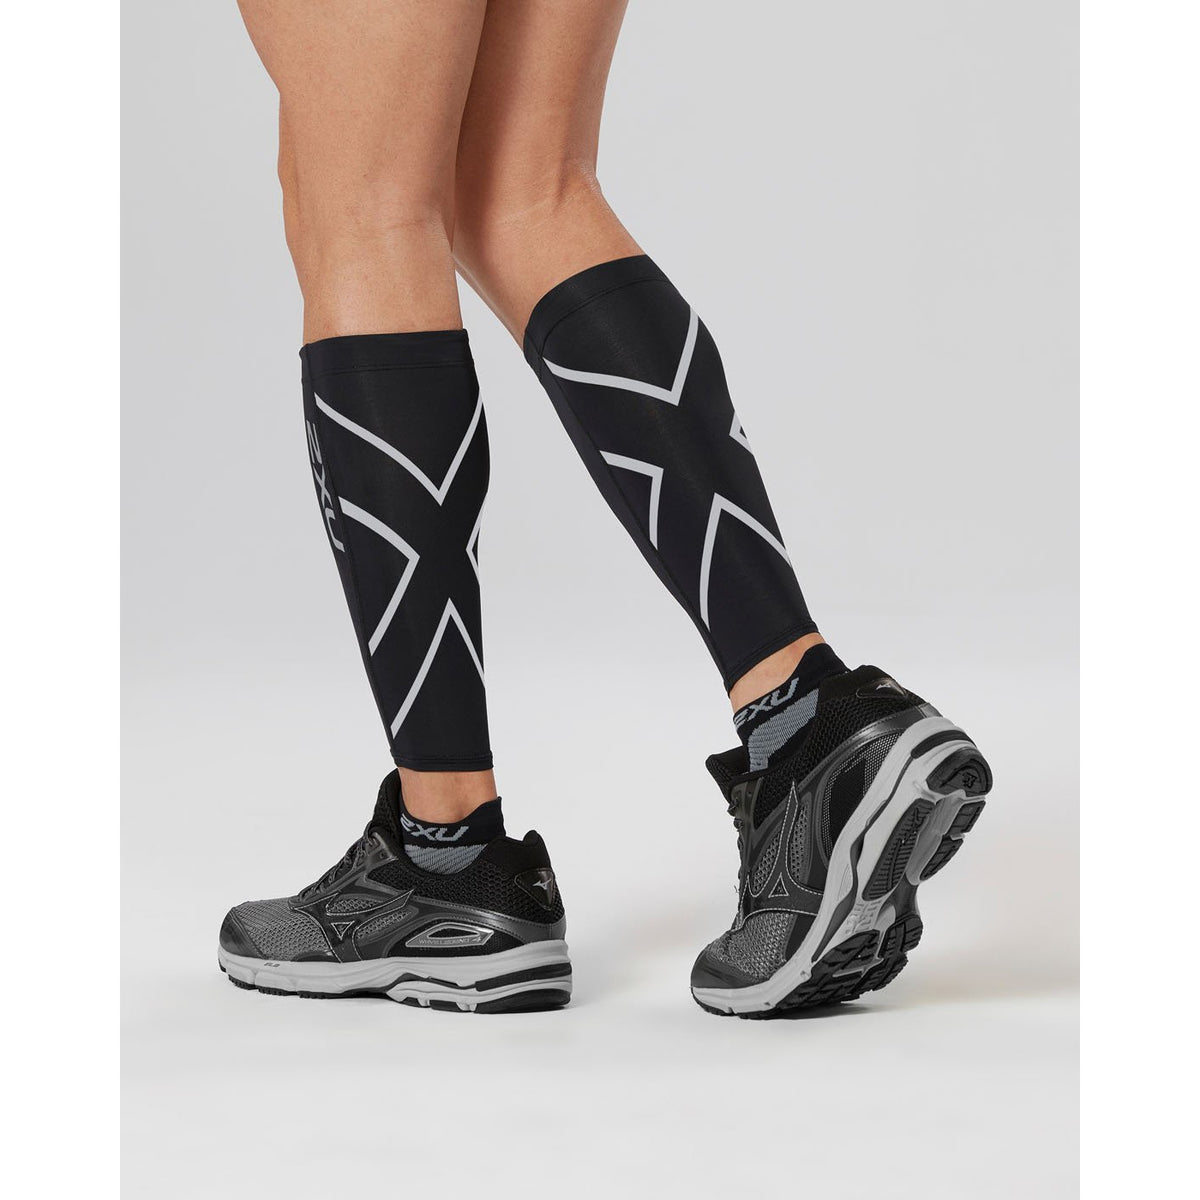 2XU Unisex Compression Calf Guards - Sole Motive